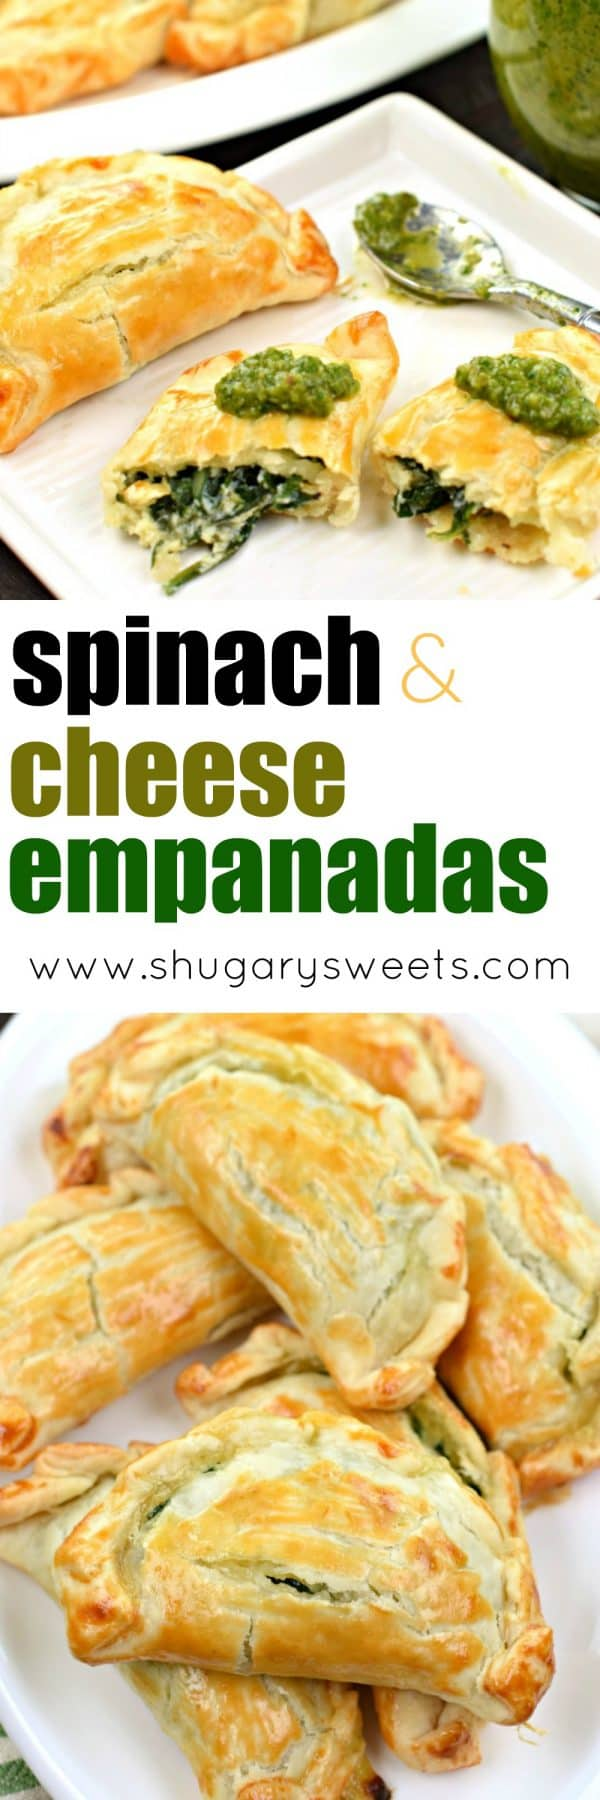 Spinach and Cheese Empanadas collage